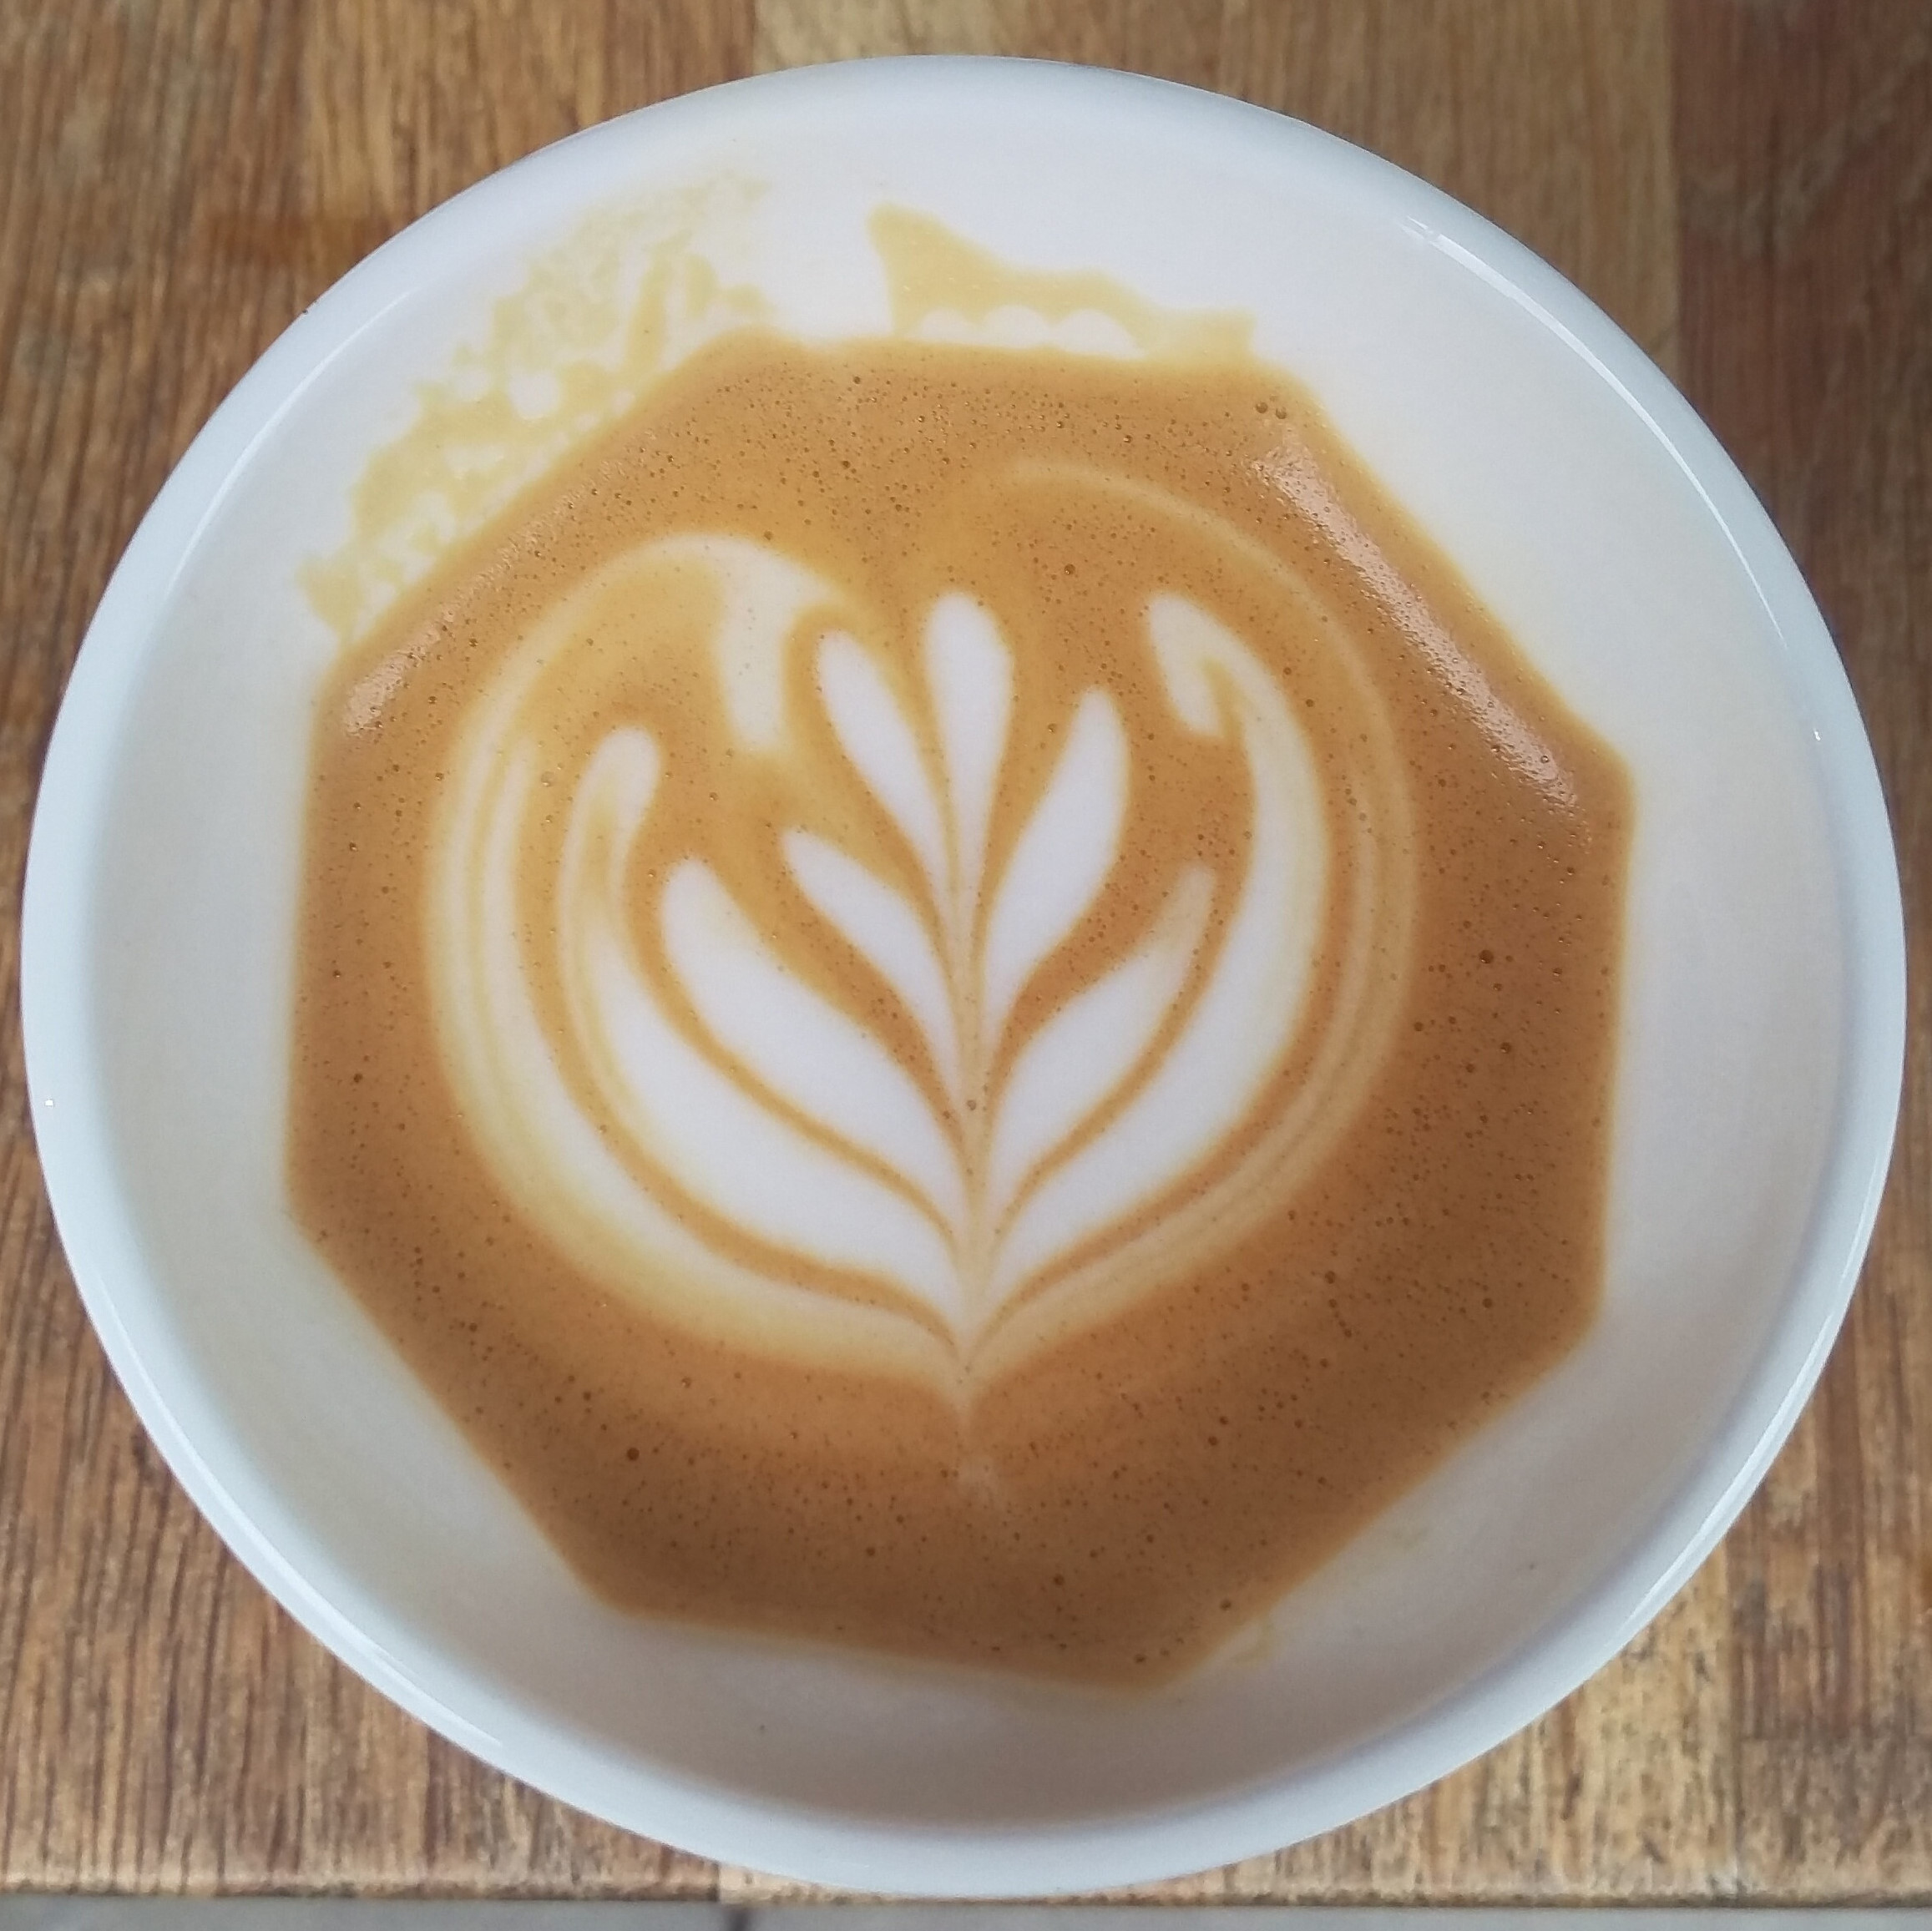 Some beautiful latte art by Craft Coffee at King's Cross in my Therma Cup.